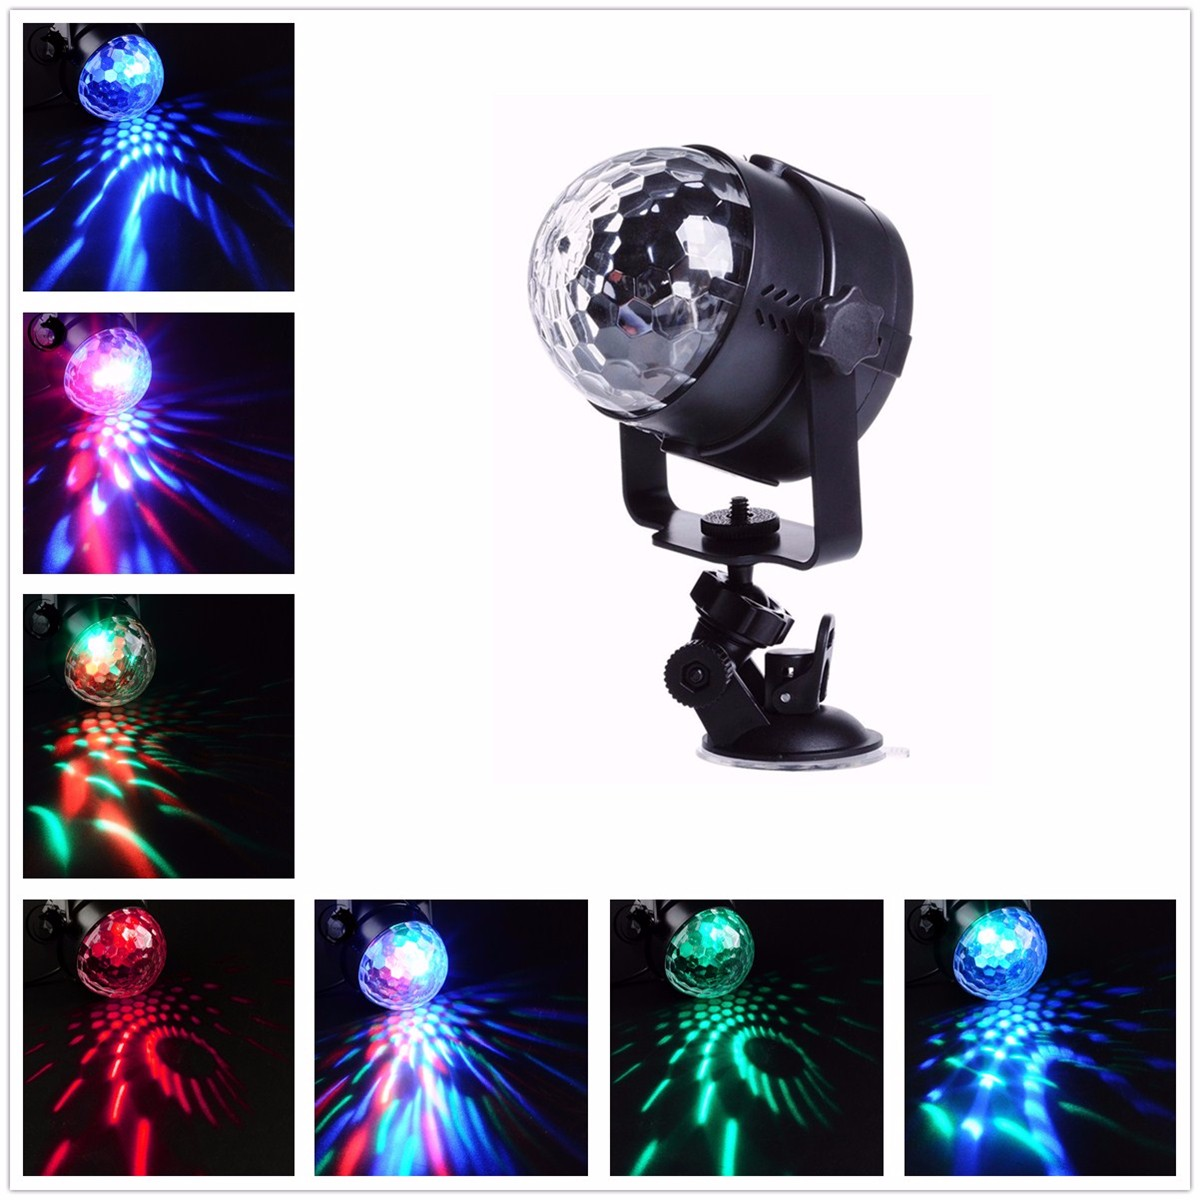 Voice Control Magic LED Stage Light Crystal Ball Night Lamp Sucker Plate Stand DJ Club Pub Disco Wedding Party Show Lighting mini rgb led party disco club dj light crystal magic ball effect stage lighting